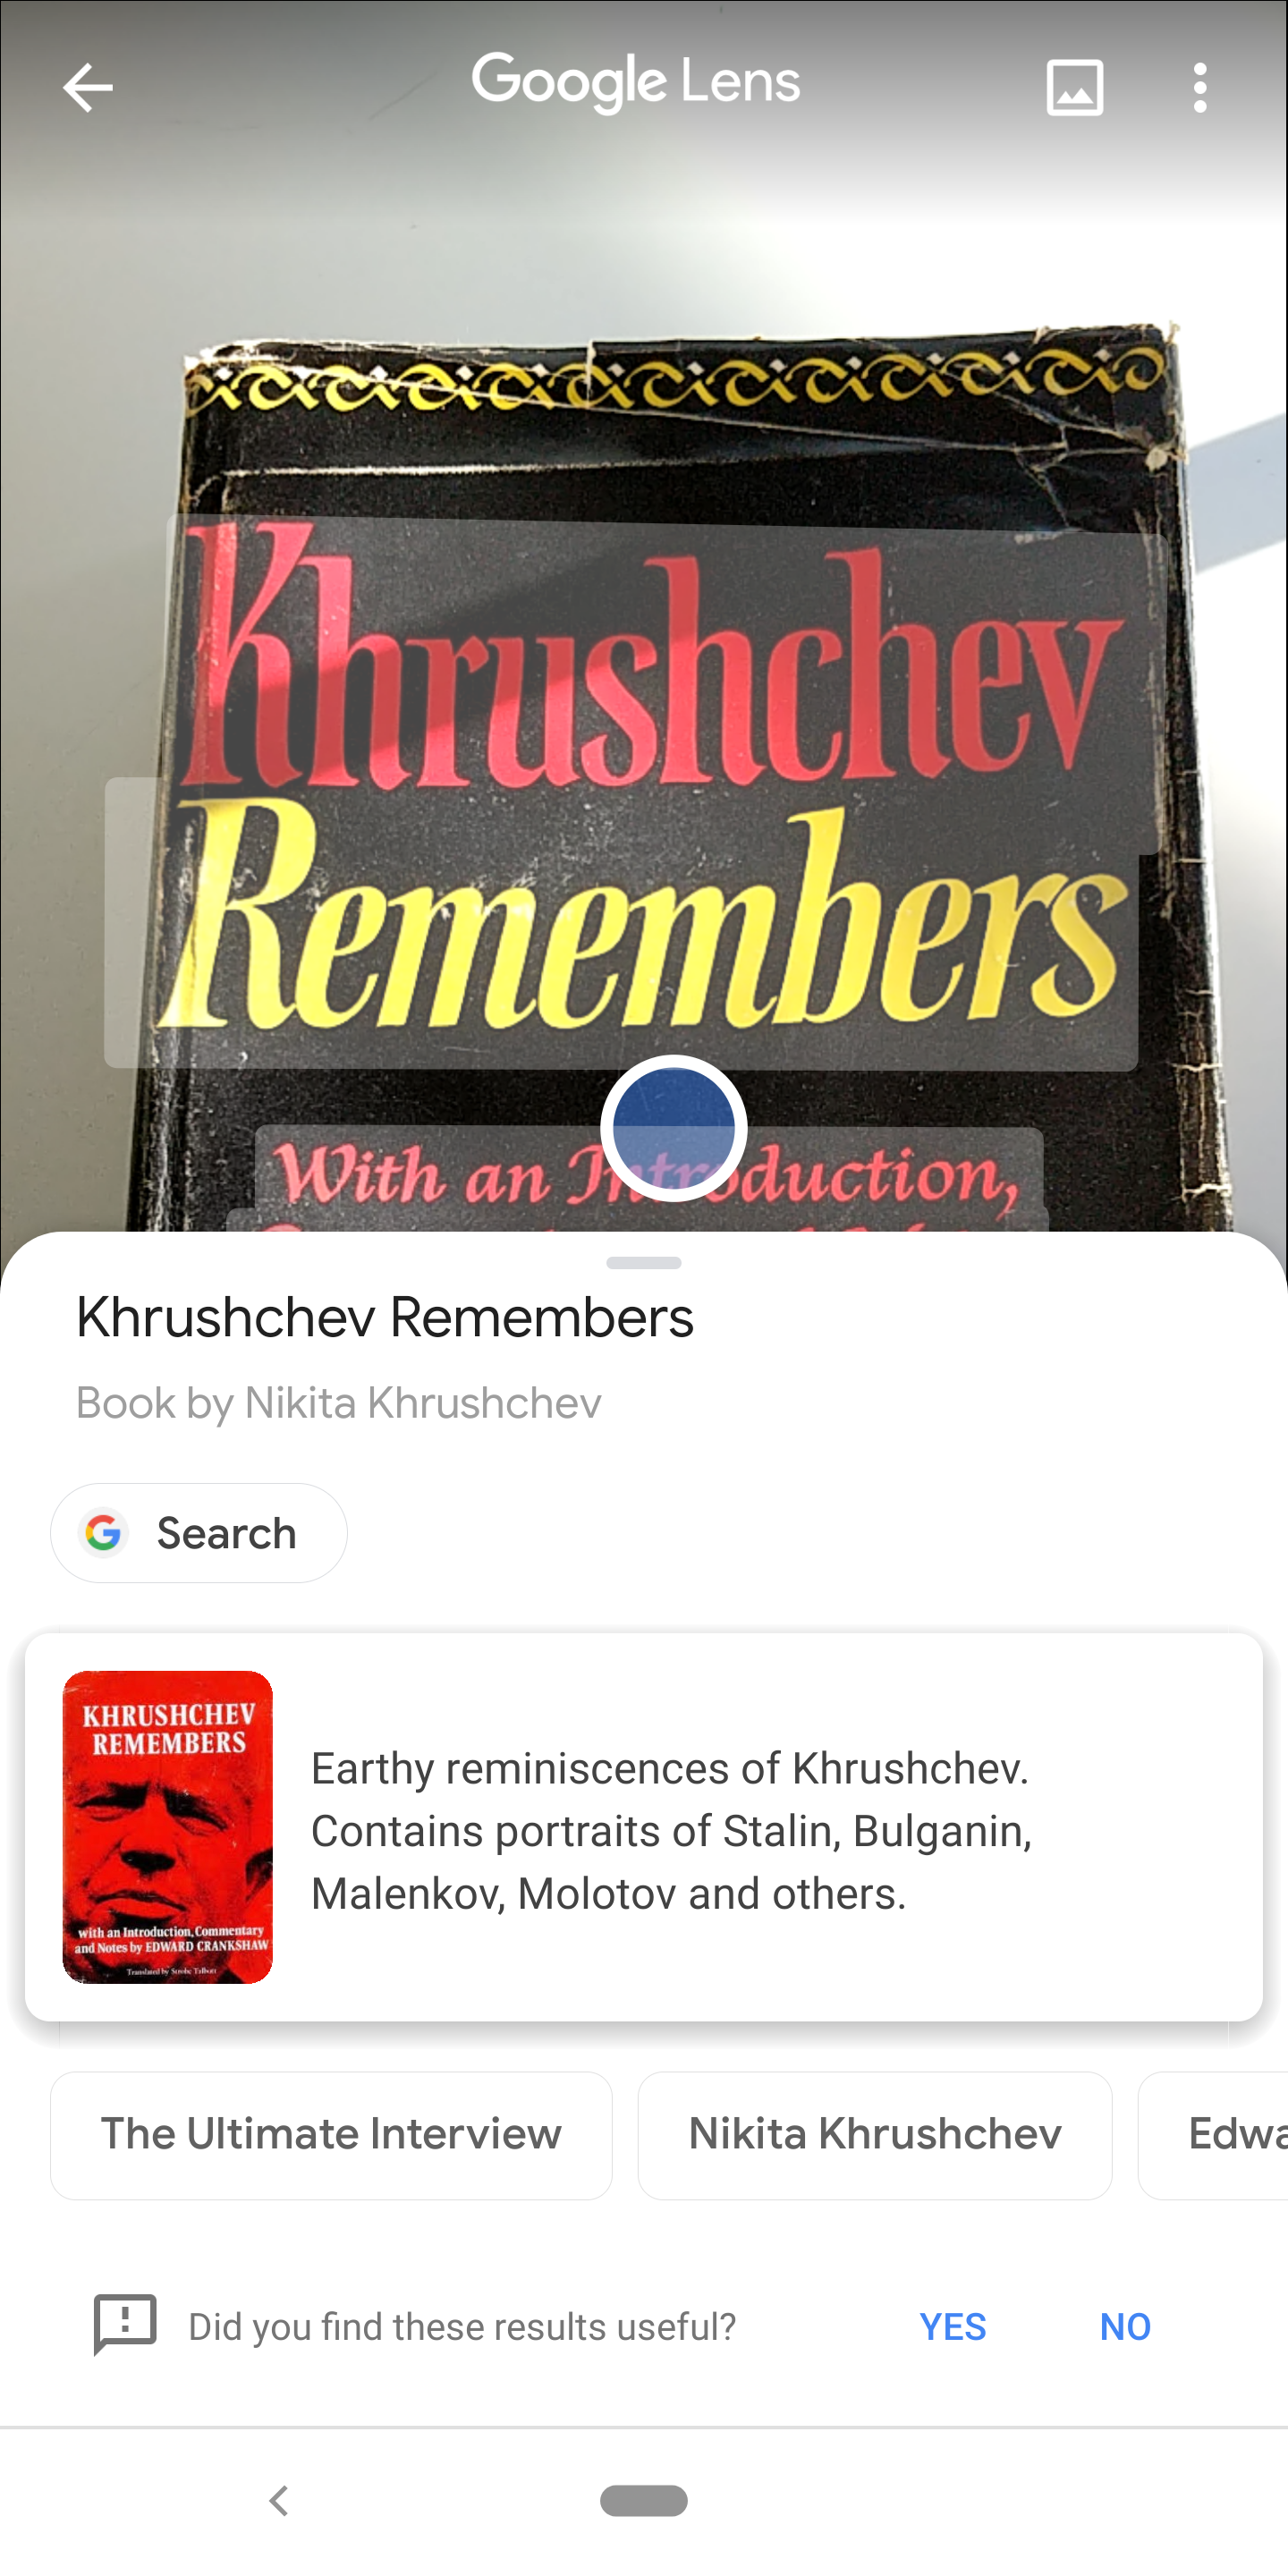 Yes, this is 'Khrushchev Remembers'